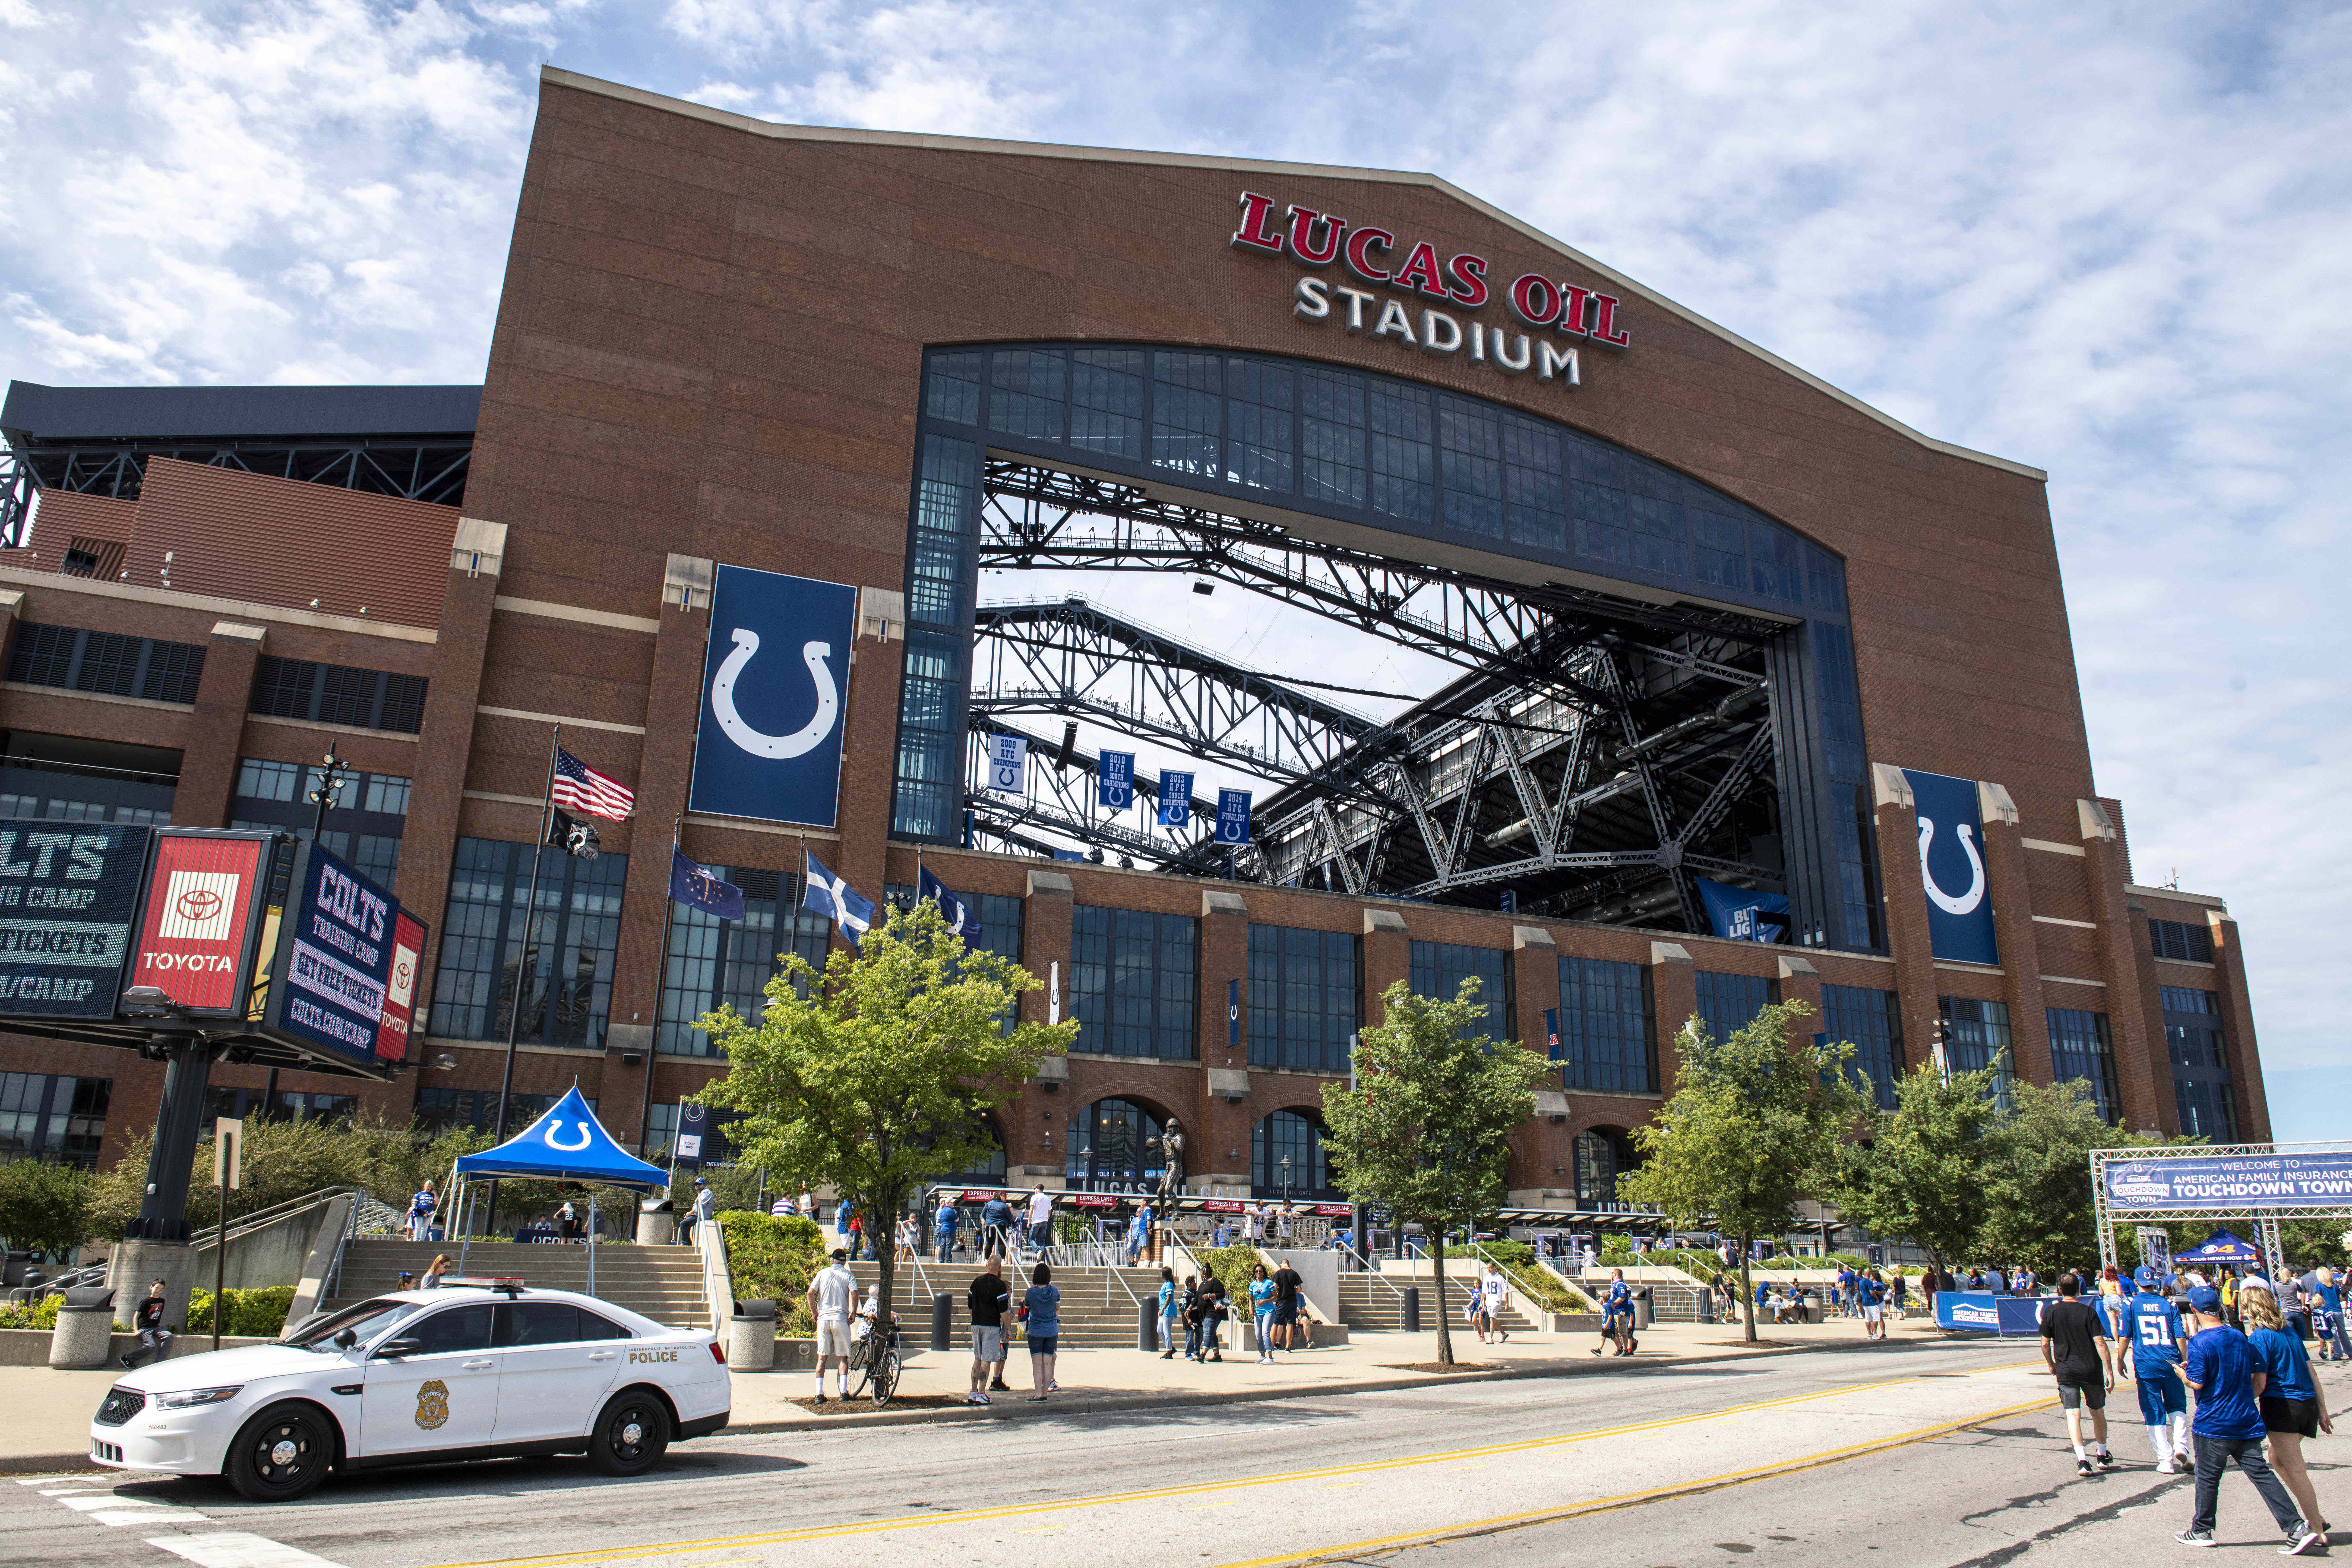 A general view of the exterior of Lucas Oil Stadium before the game between the Carolina Panthers and Indianapolis Colts.